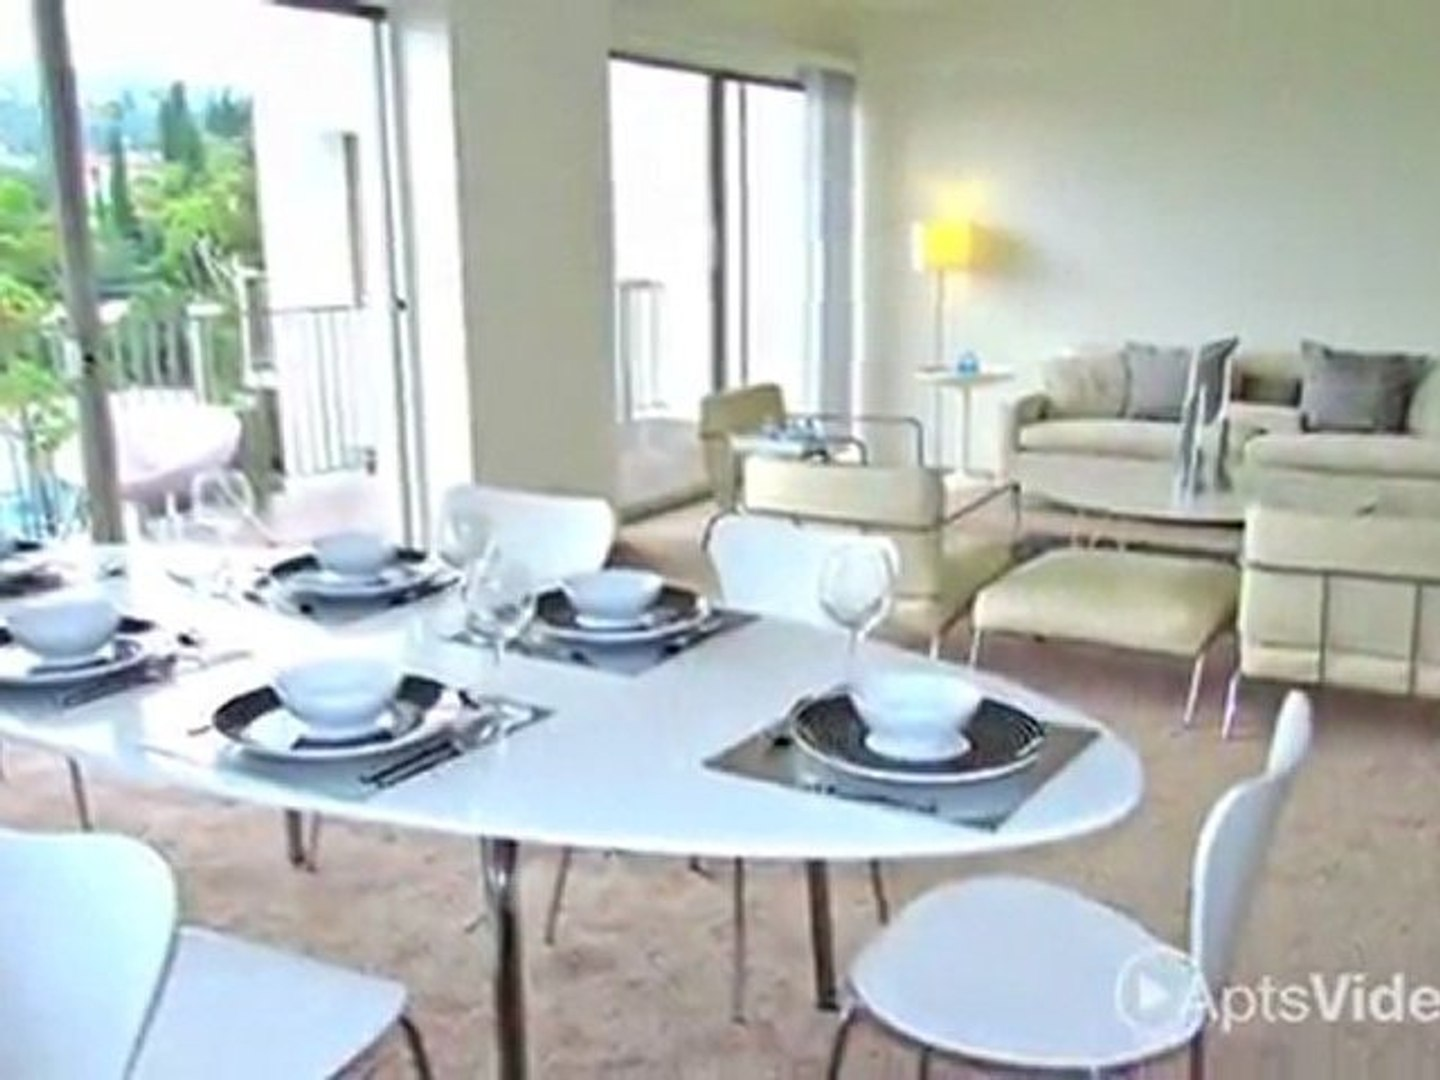 Hollywood Ardmore Apartments in Hollywood, CA - ForRent.com